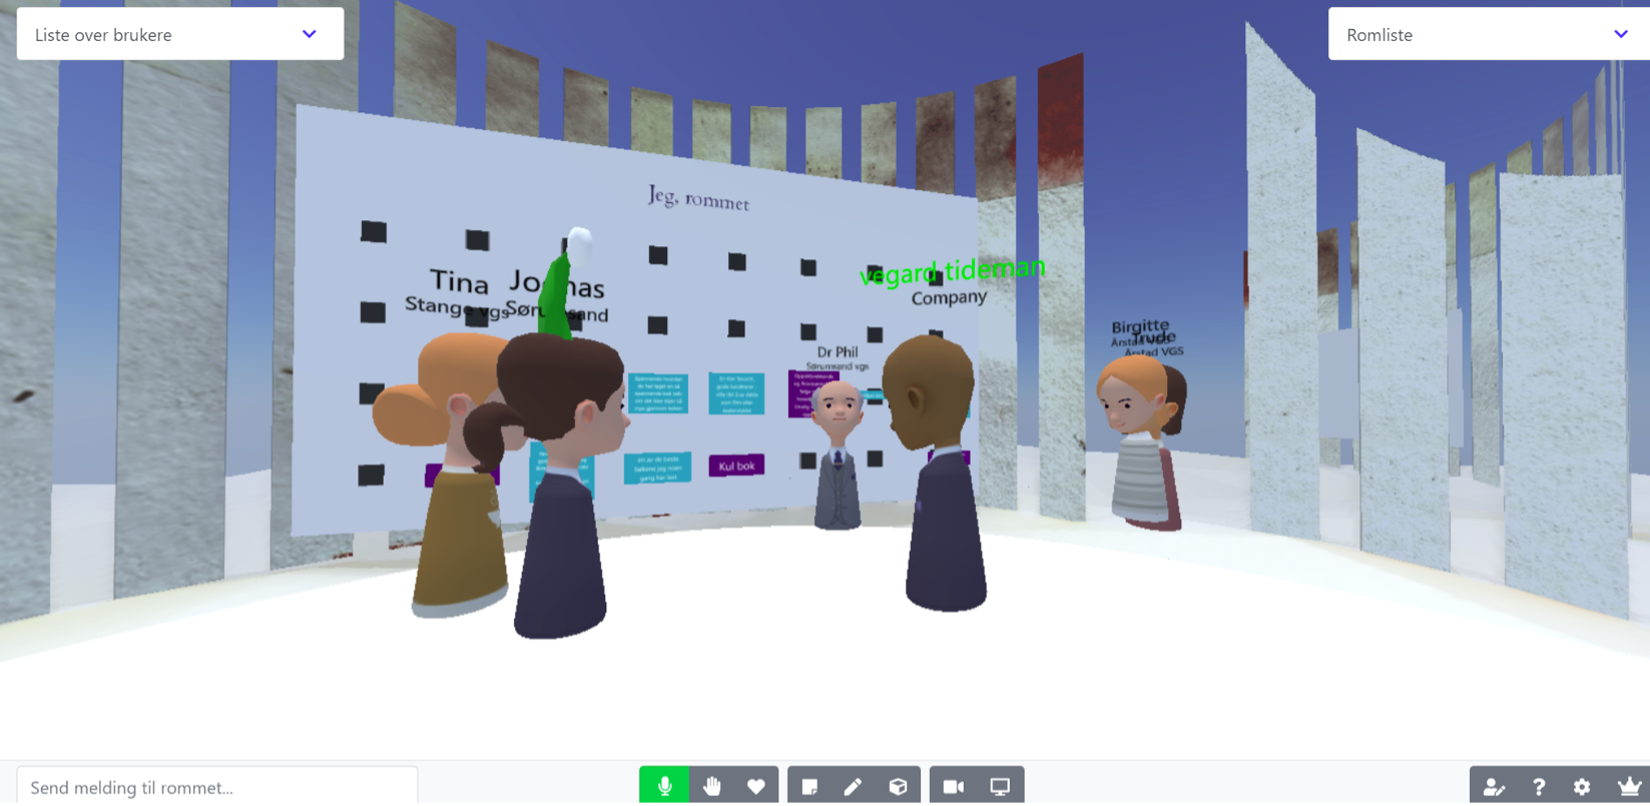 In 3D using avatars, screenshot of students talking to an author